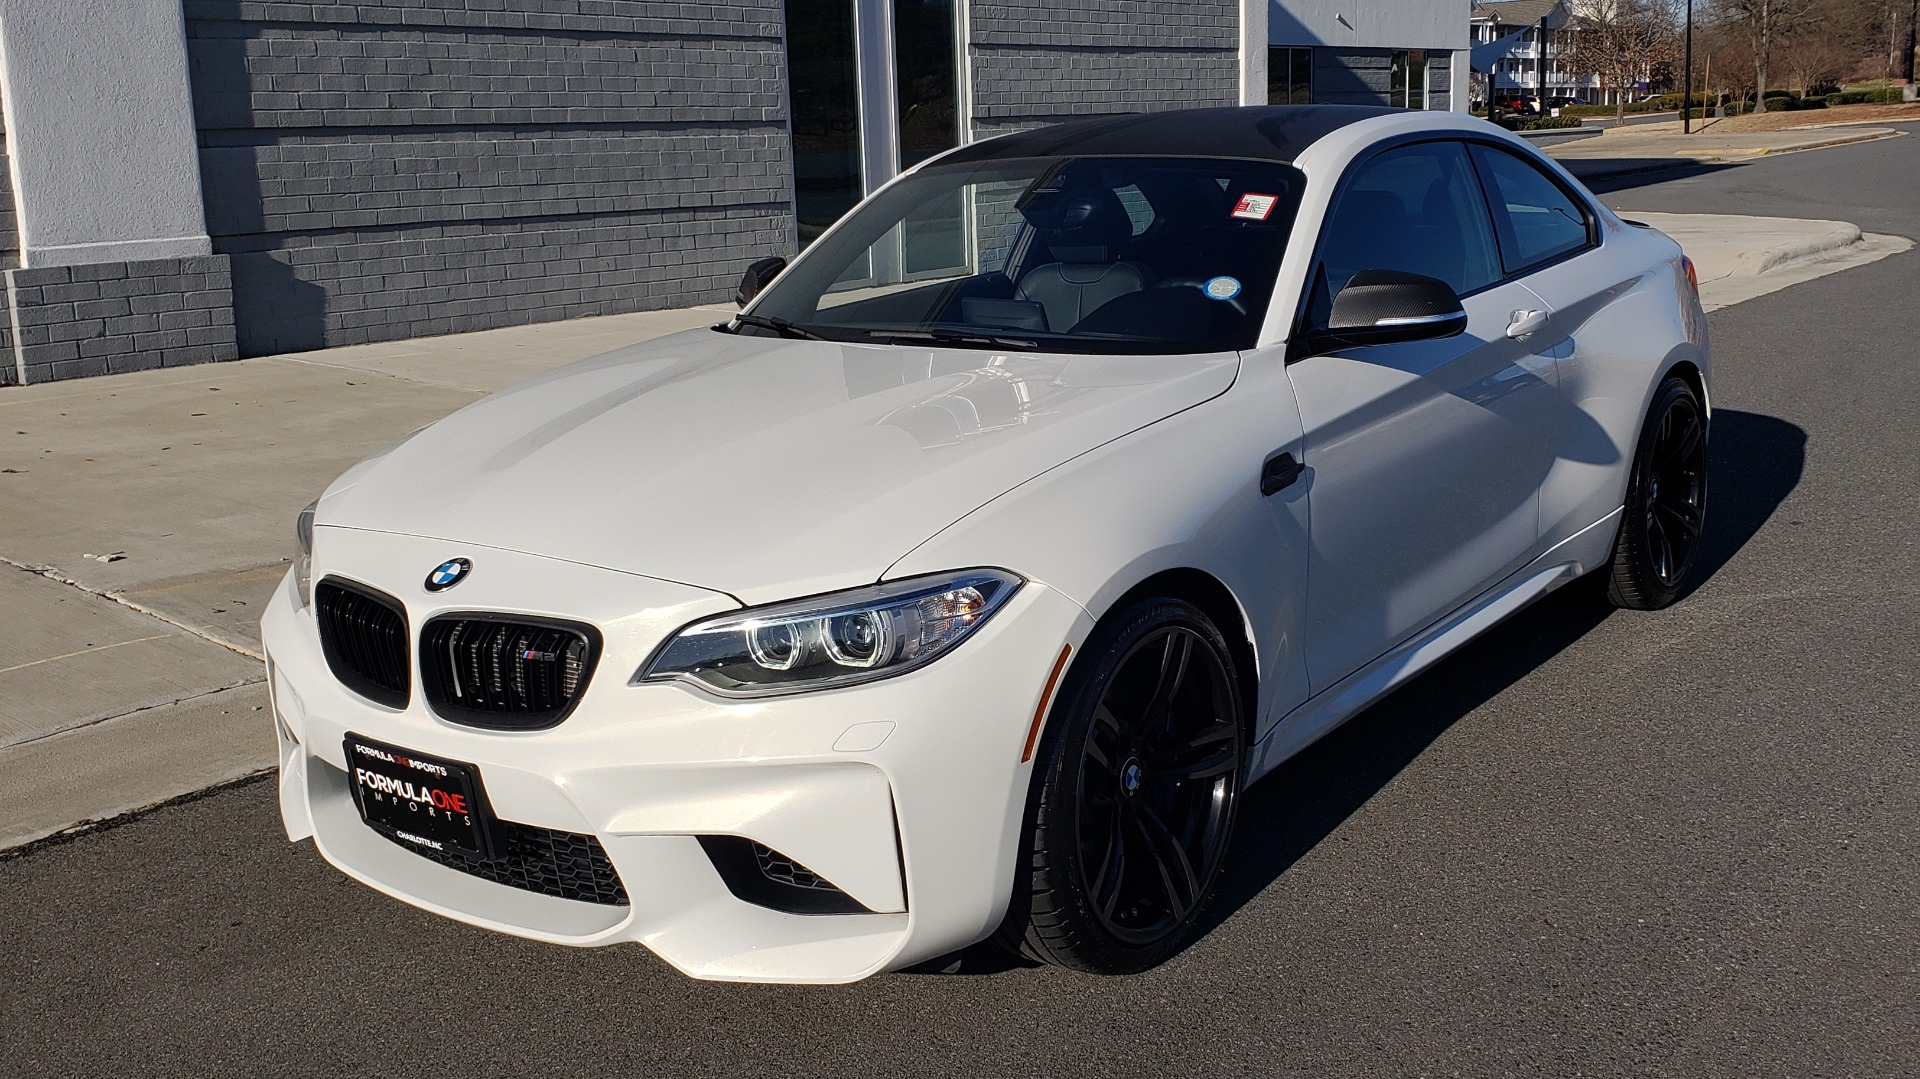 Used 2017 BMW M2 COUPE / MANUAL / EXEC PKG / NAV / WIFI / PDC / REARVIEW for sale Sold at Formula Imports in Charlotte NC 28227 1